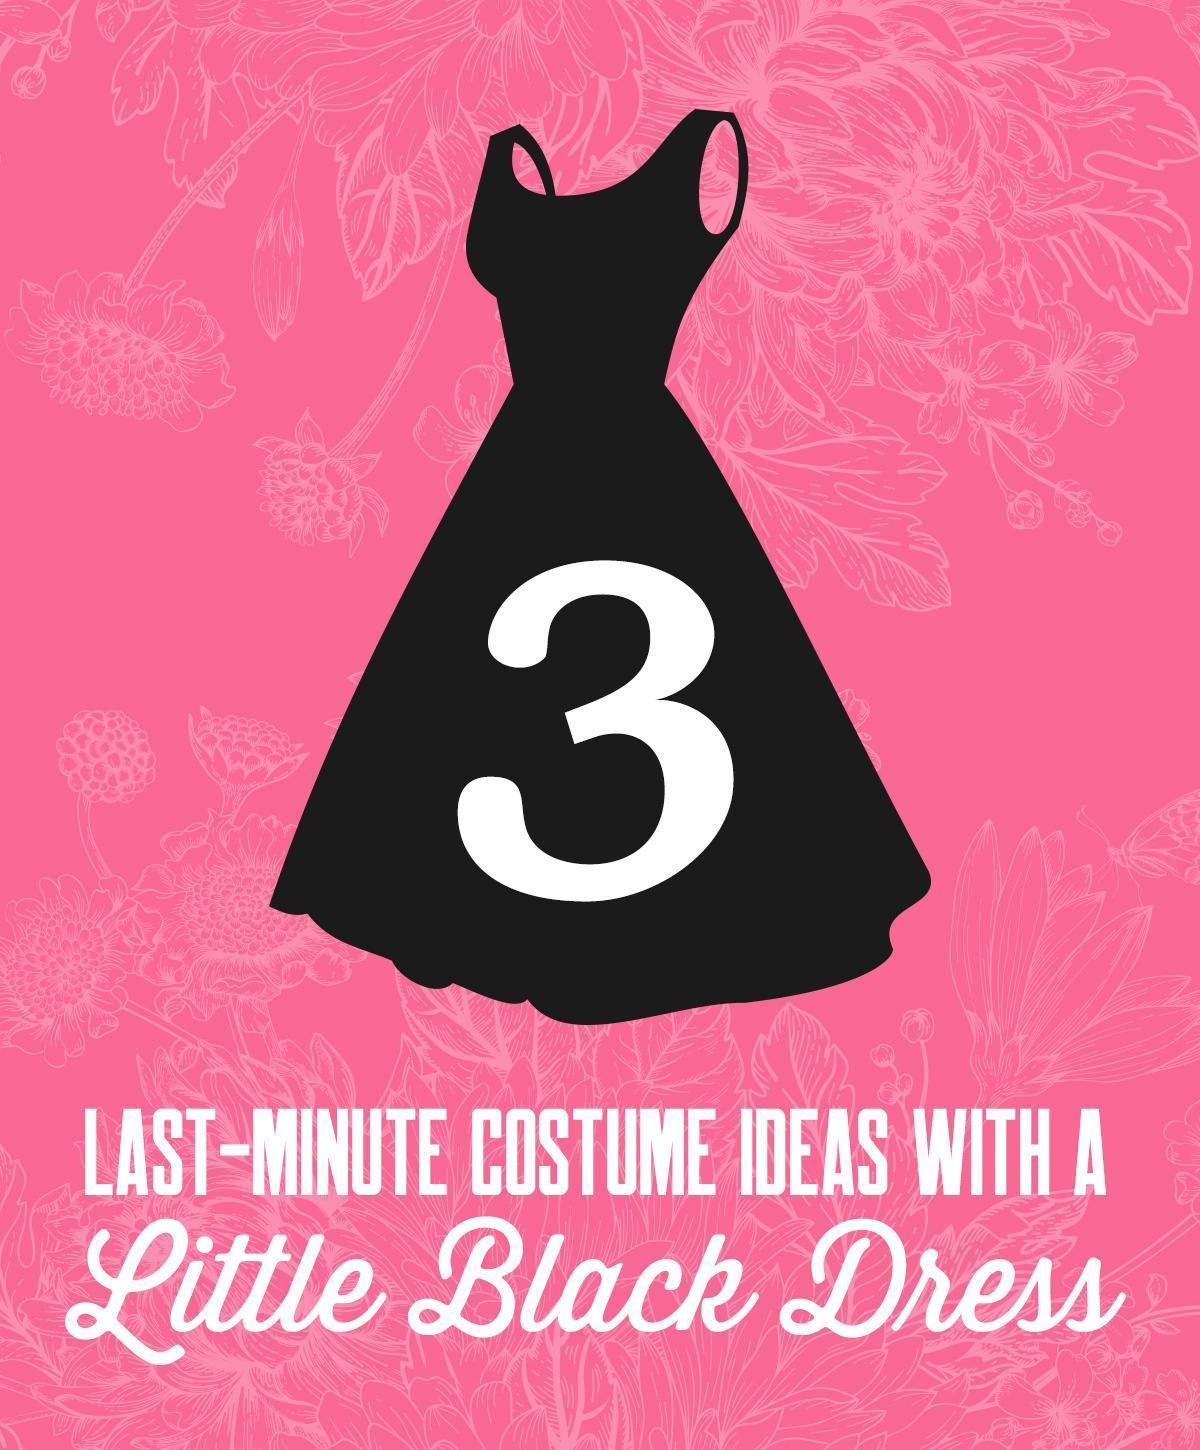 16 Last-Minute Costume Ideas With a Little Black Dress